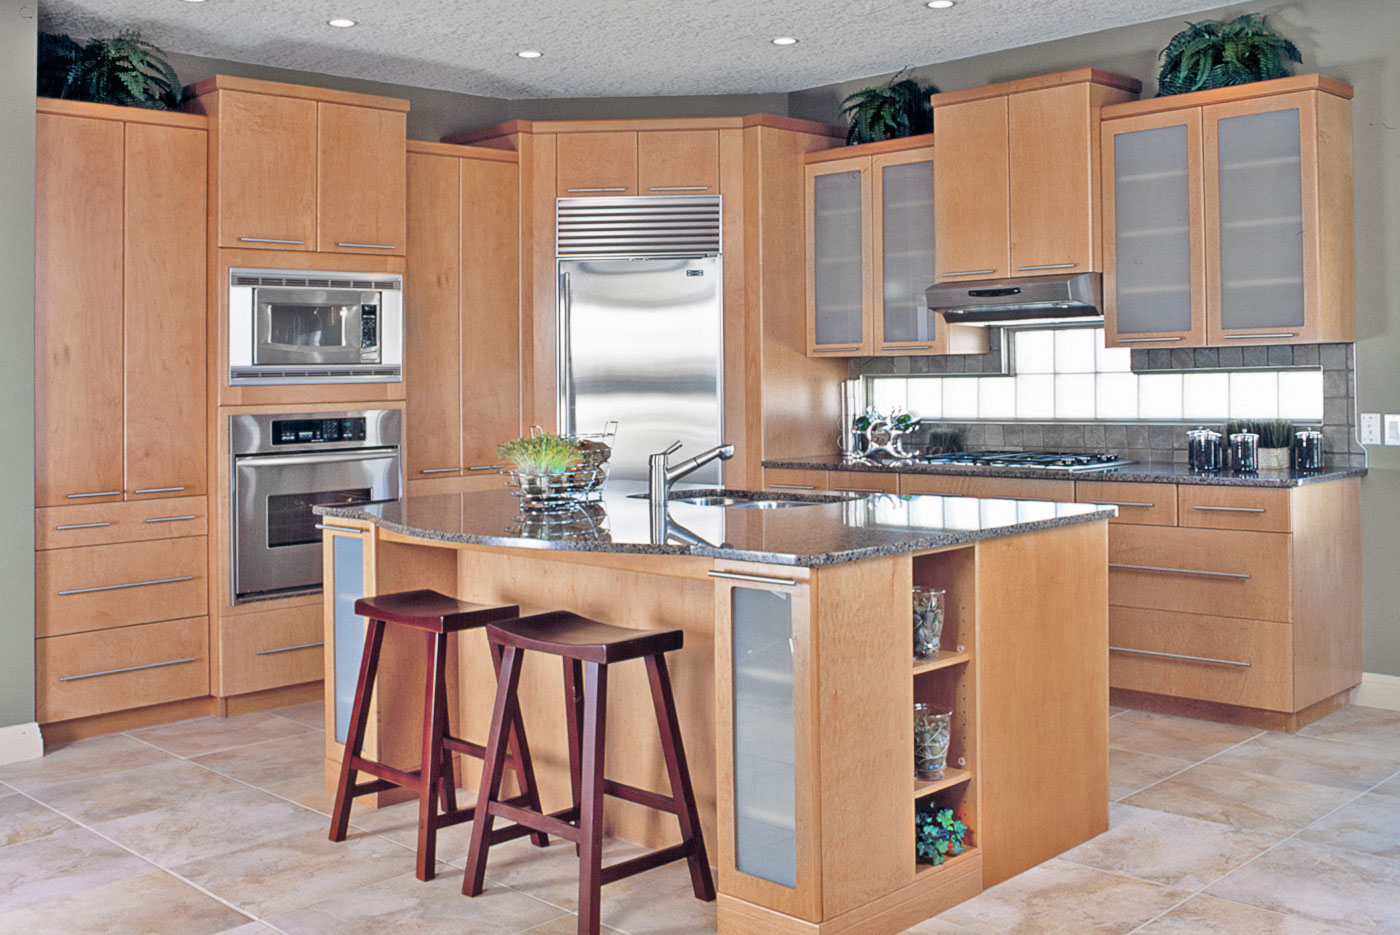 Contemporary kitchen with medium stained cabinets cupboards, stainless steel appliances, large island, granite countertops, available at Superior Cabinets Saskatoon, Regina, Calgary, Edmonton.